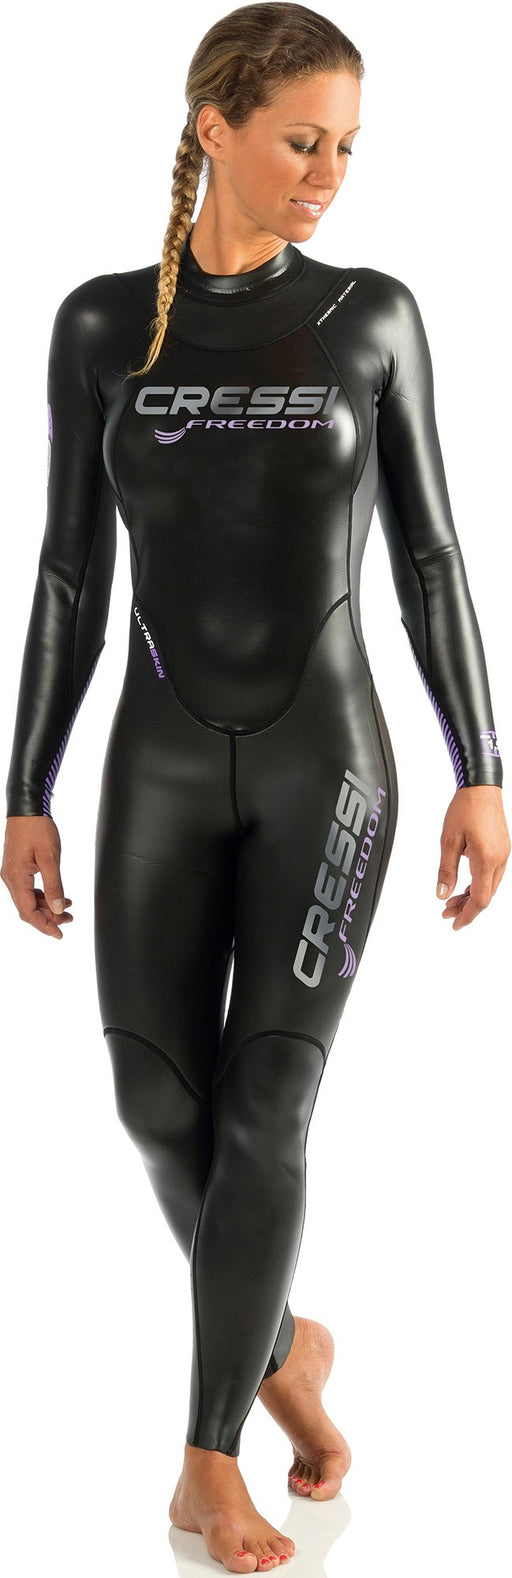 Cressi FREEDOM ALL-IN-ONE LADY - 1.5mm Wetsuit / Purple / Black / L